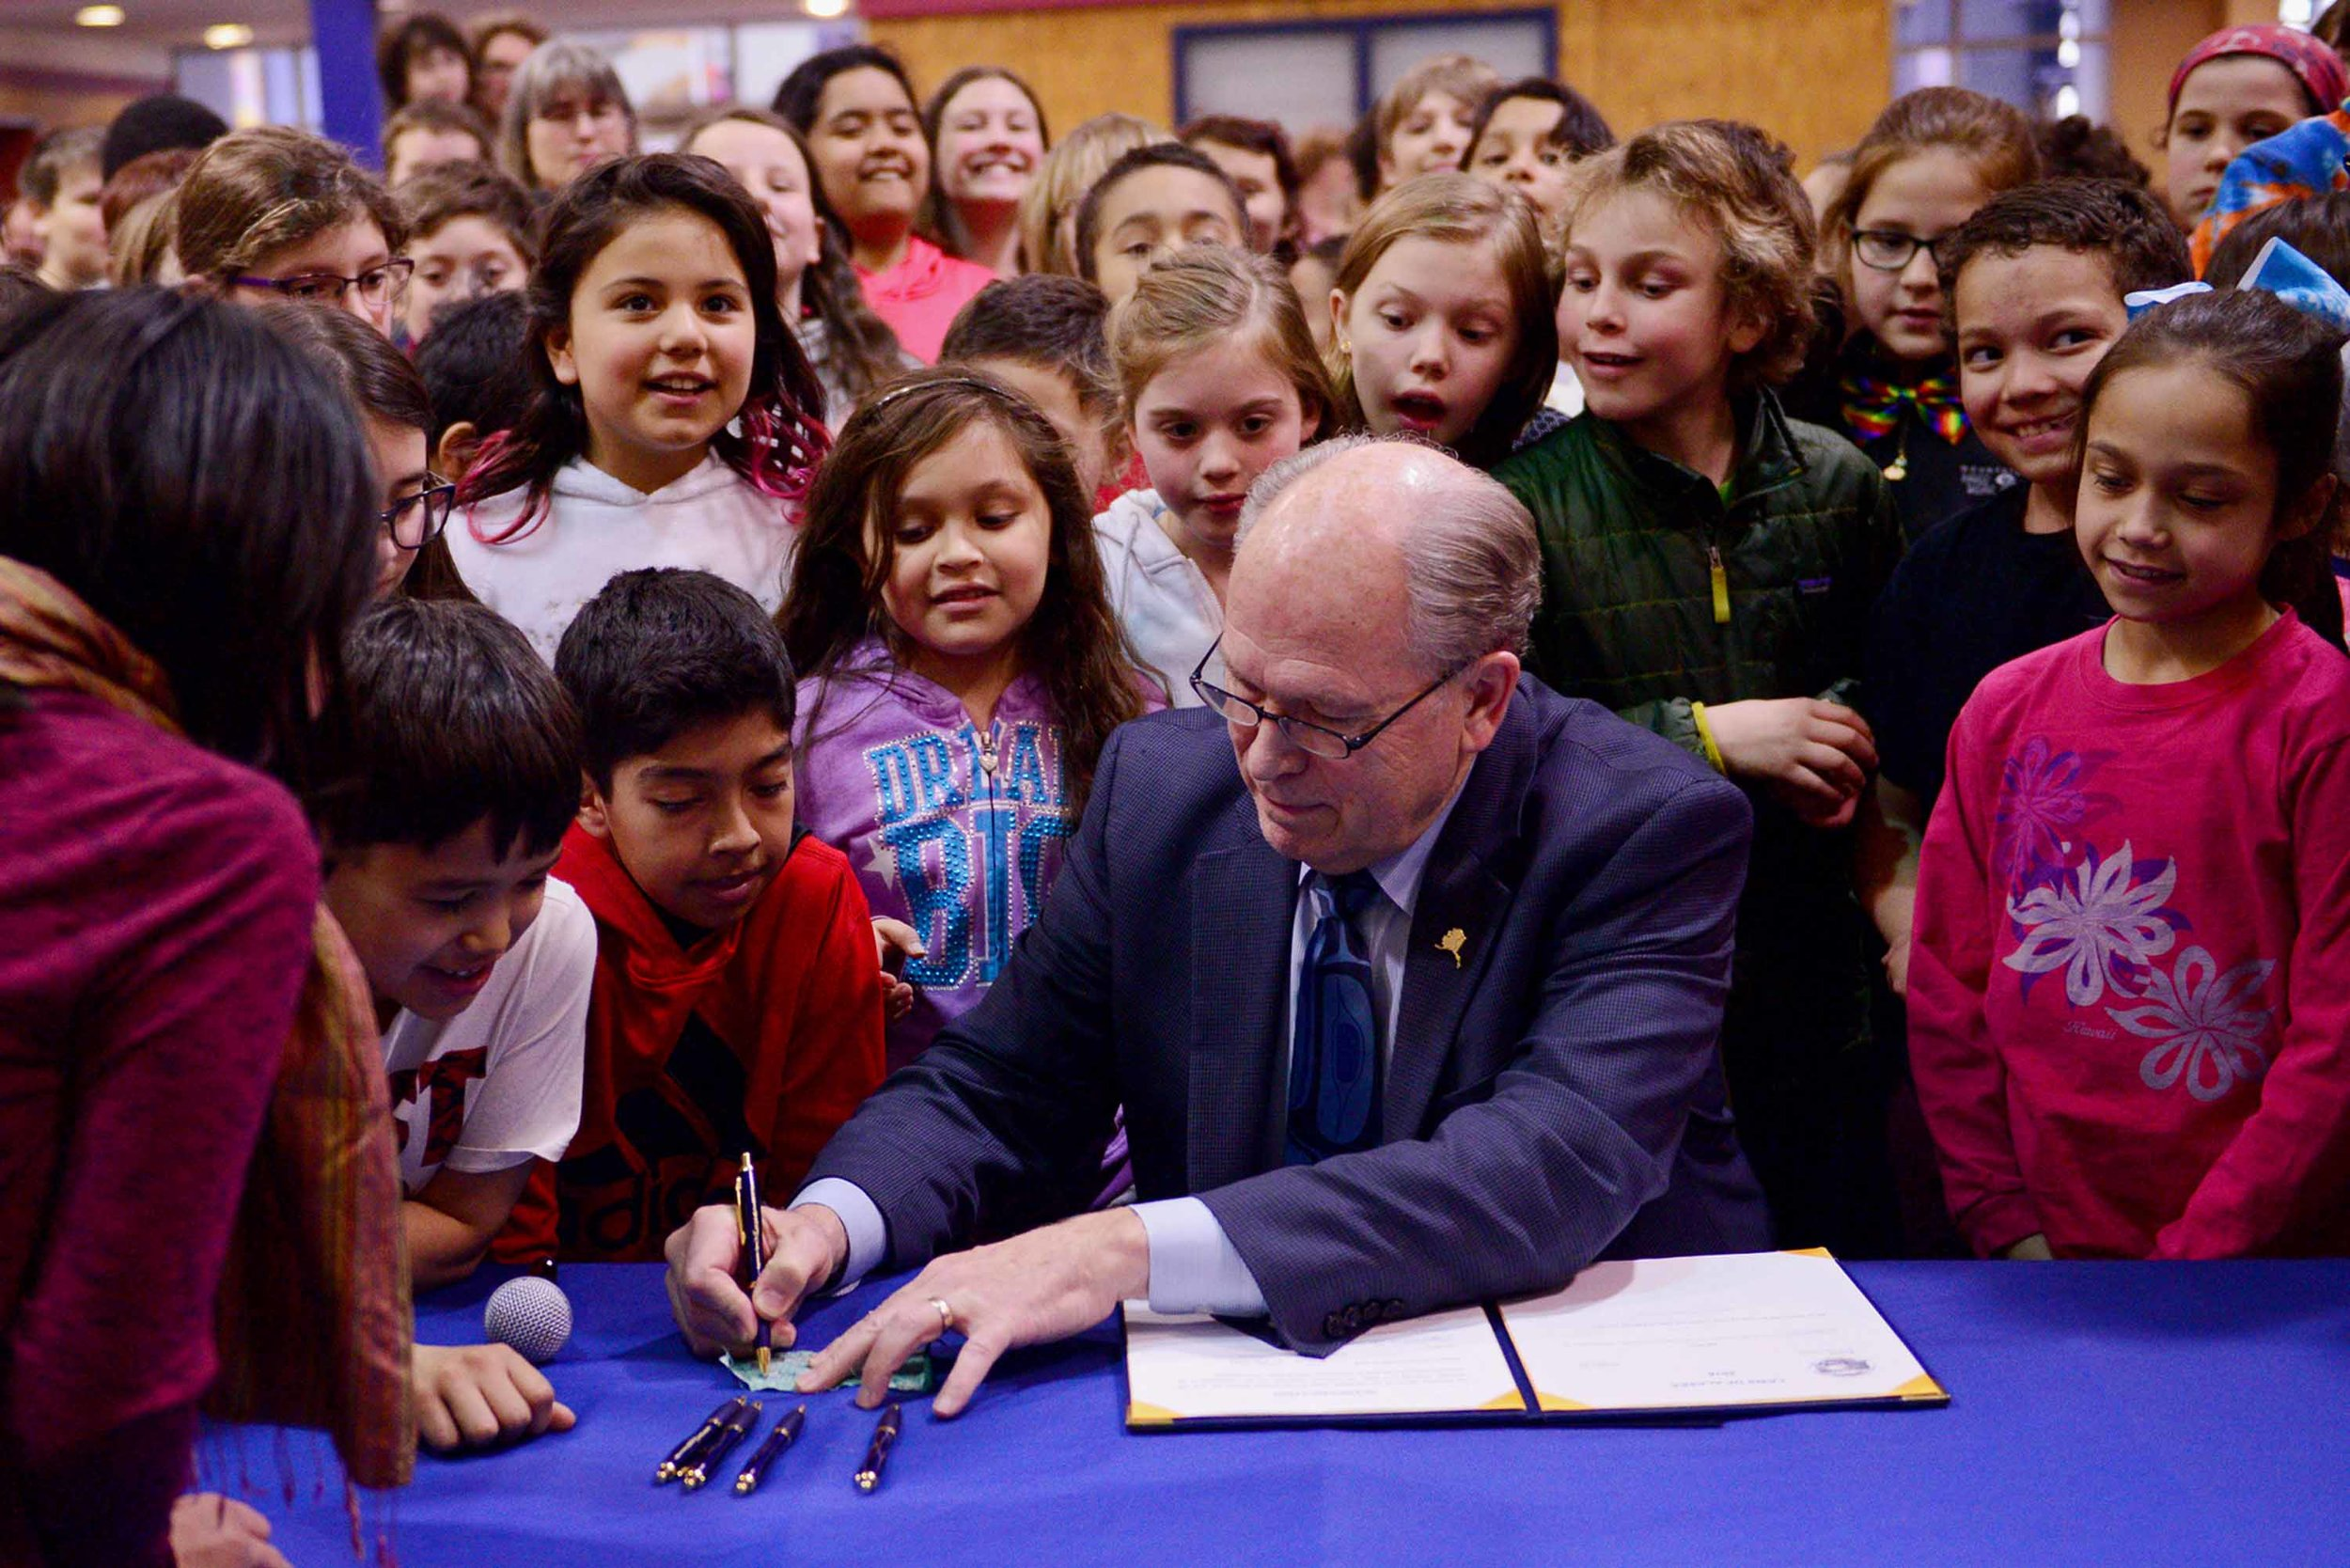 In Juneau, Harborview Elementary School students crowd around Gov. Walker as he signs House Bill 287, allocating $1.3 billion to early fund Alaska's schools for two years. May 3, 2018.